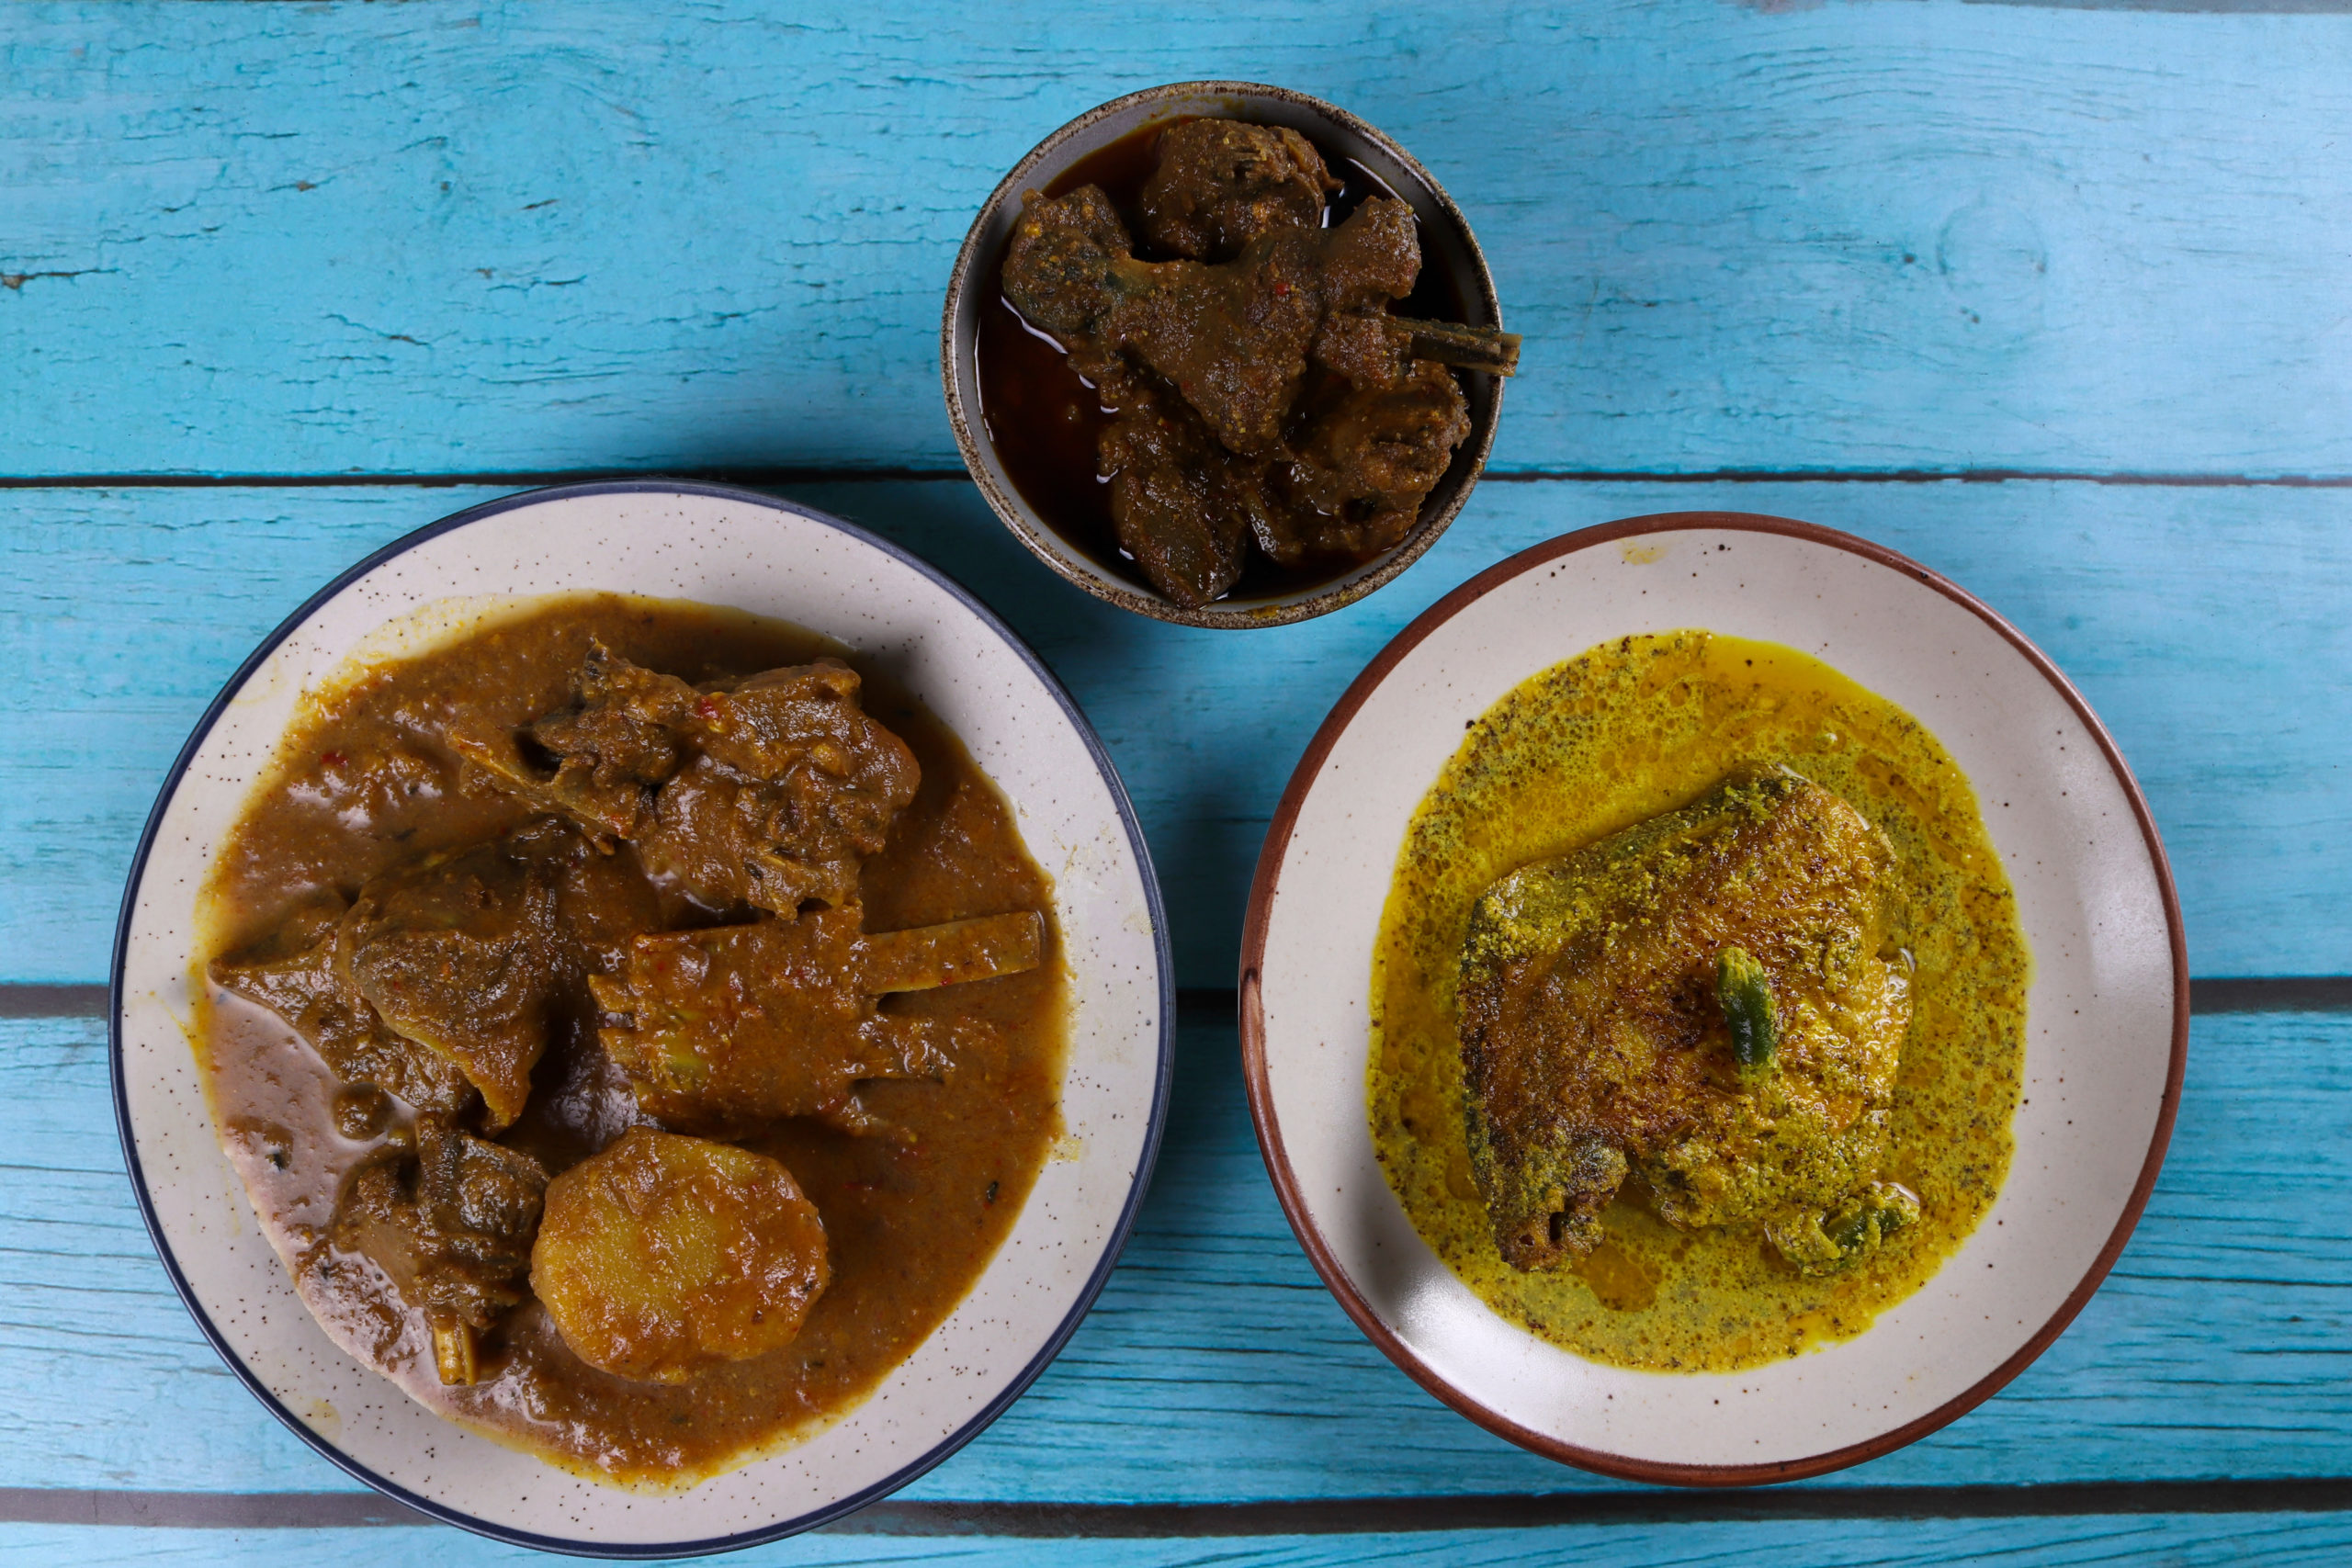 Bangladeshi cuisine including mutton, chicken, and fish curries